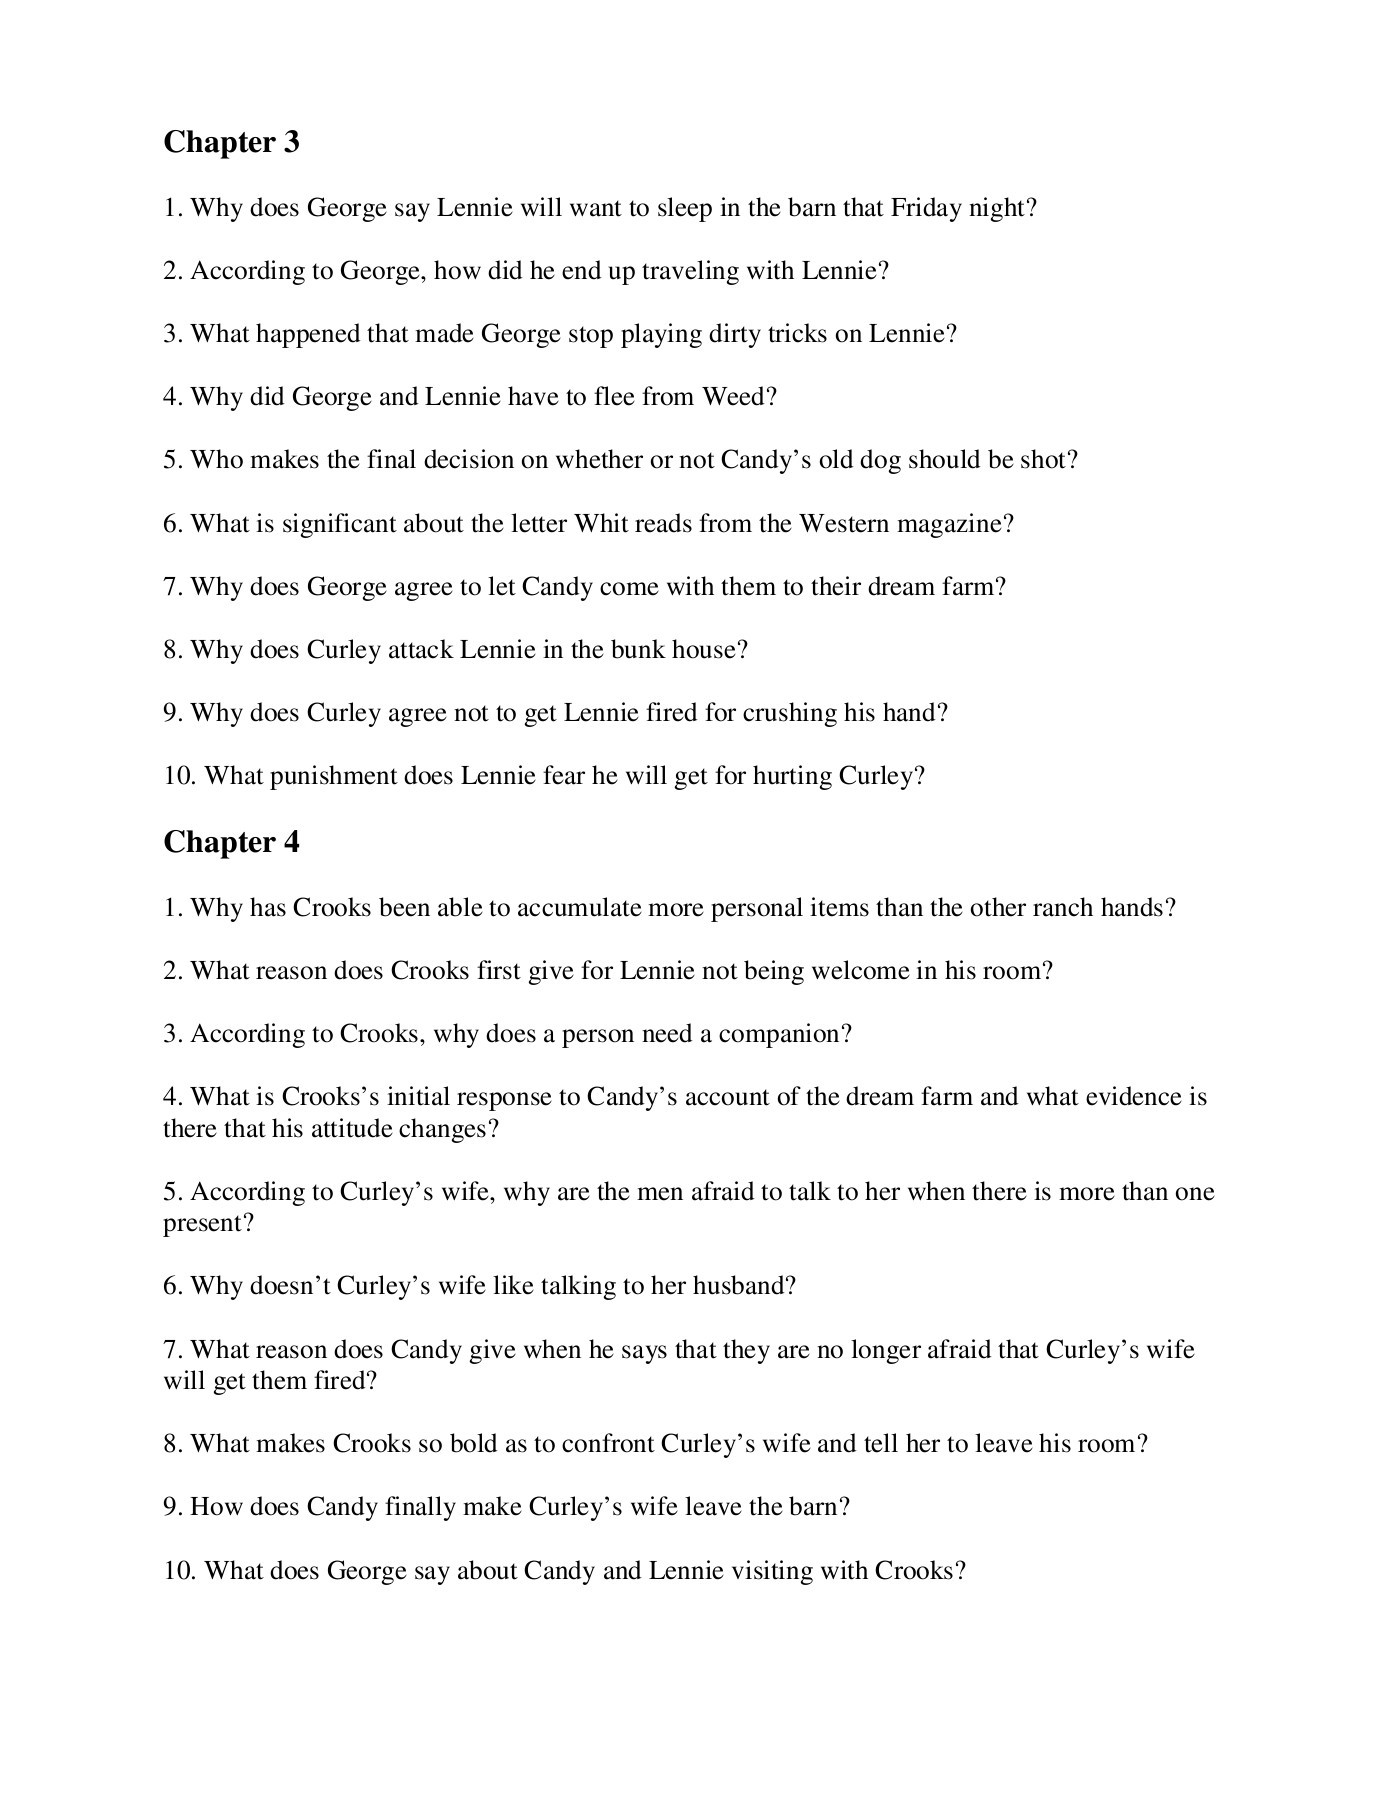 Mice Of Men Questions Of Mice And Men Chapter 4 Questions